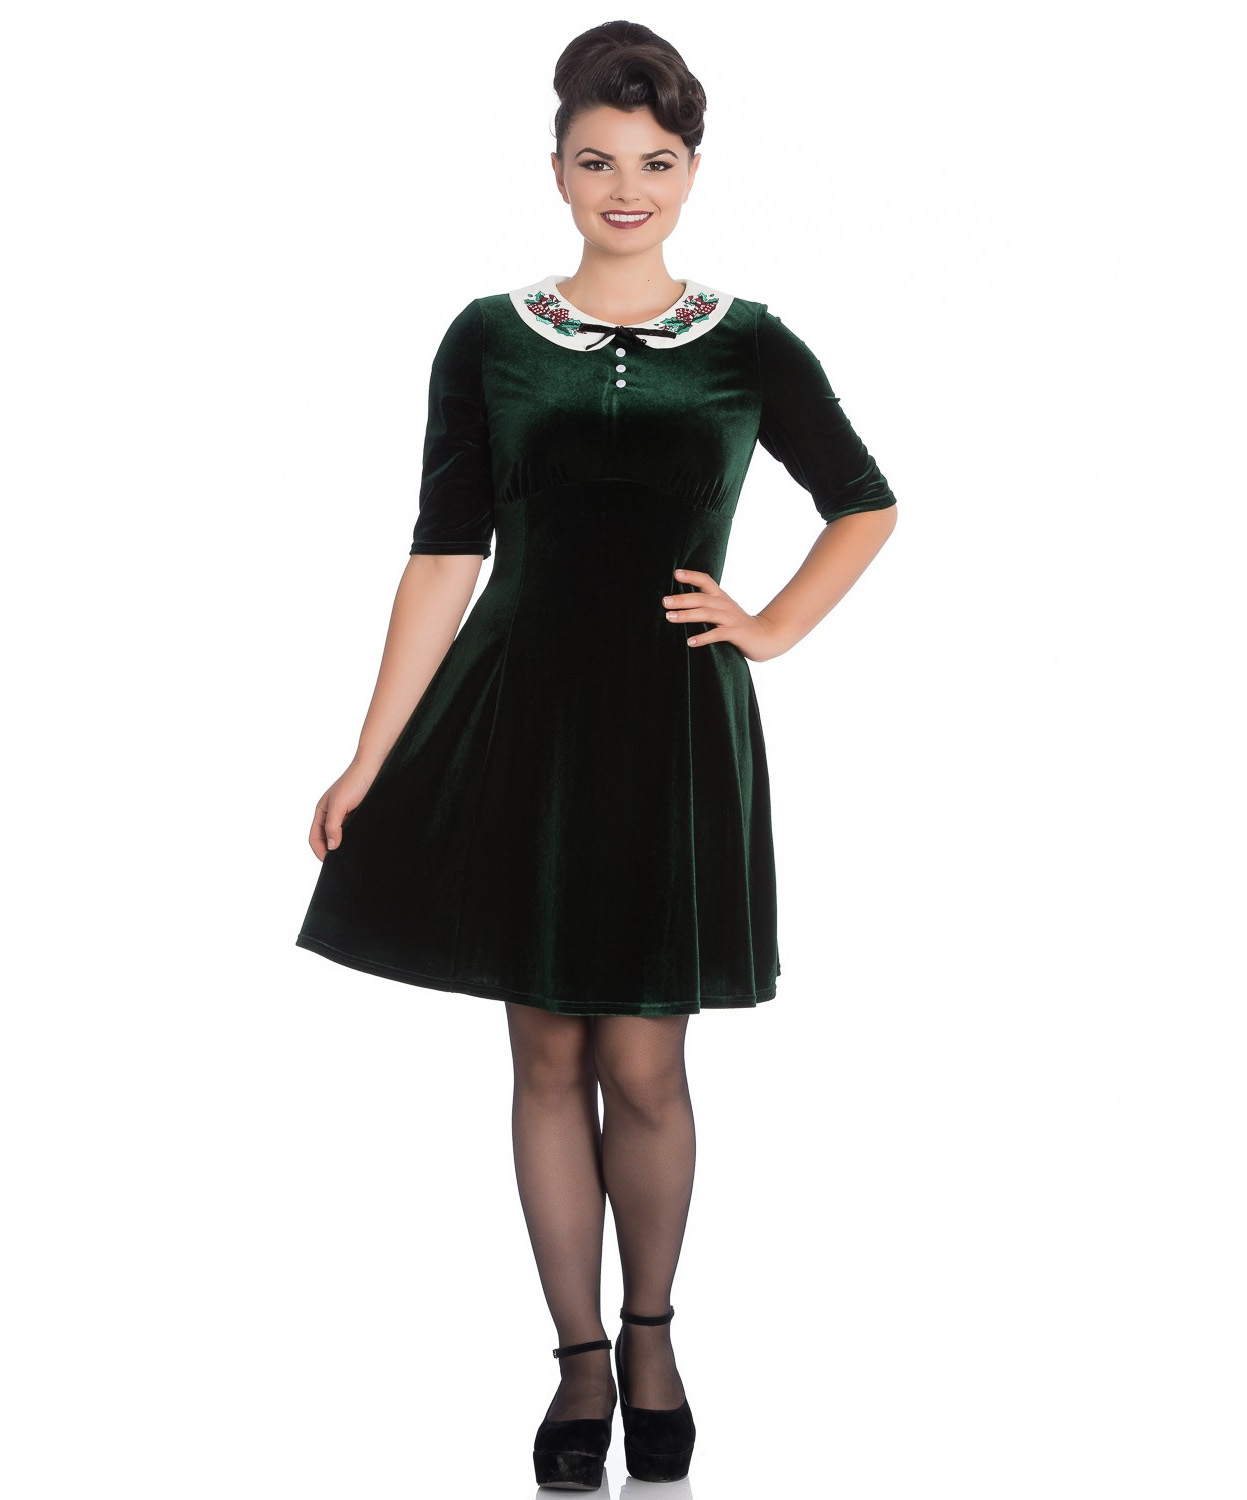 Hell-Bunny-Mini-Skater-Dress-Festive-Christmas-MERRILY-Green-Velvet-All-Sizes thumbnail 8